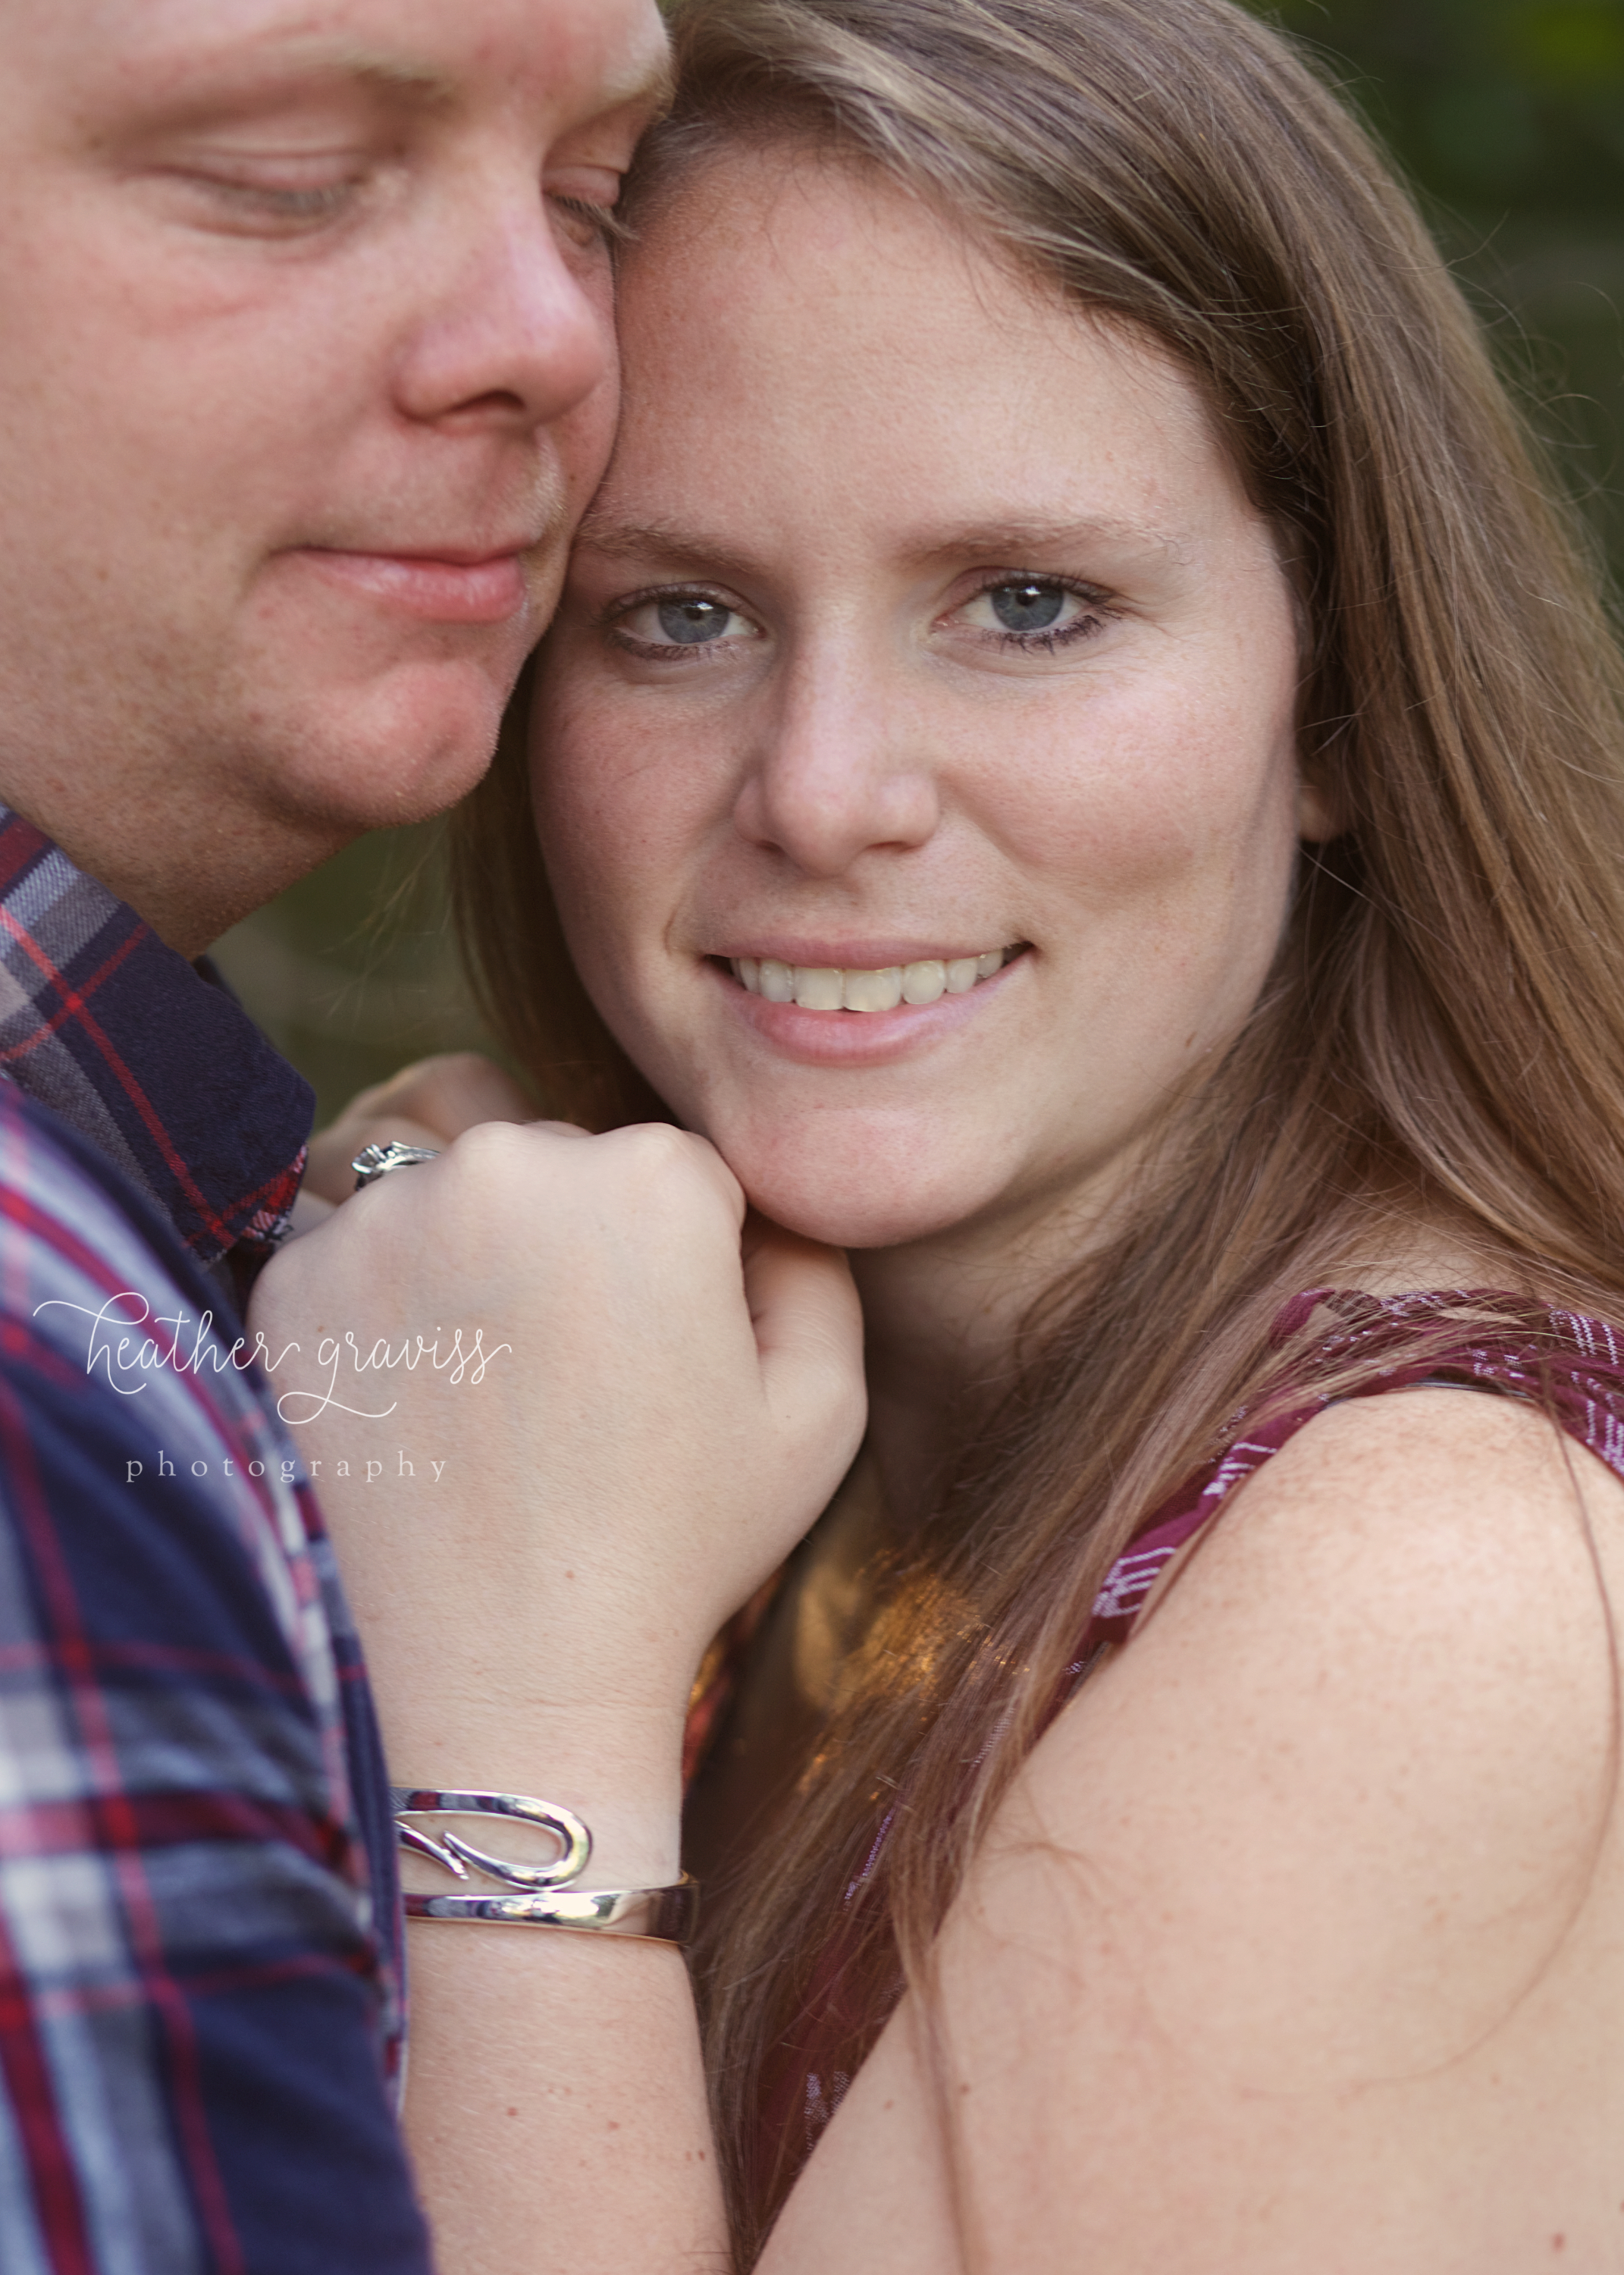 nashville middle tn engagement photographer 275.jpg